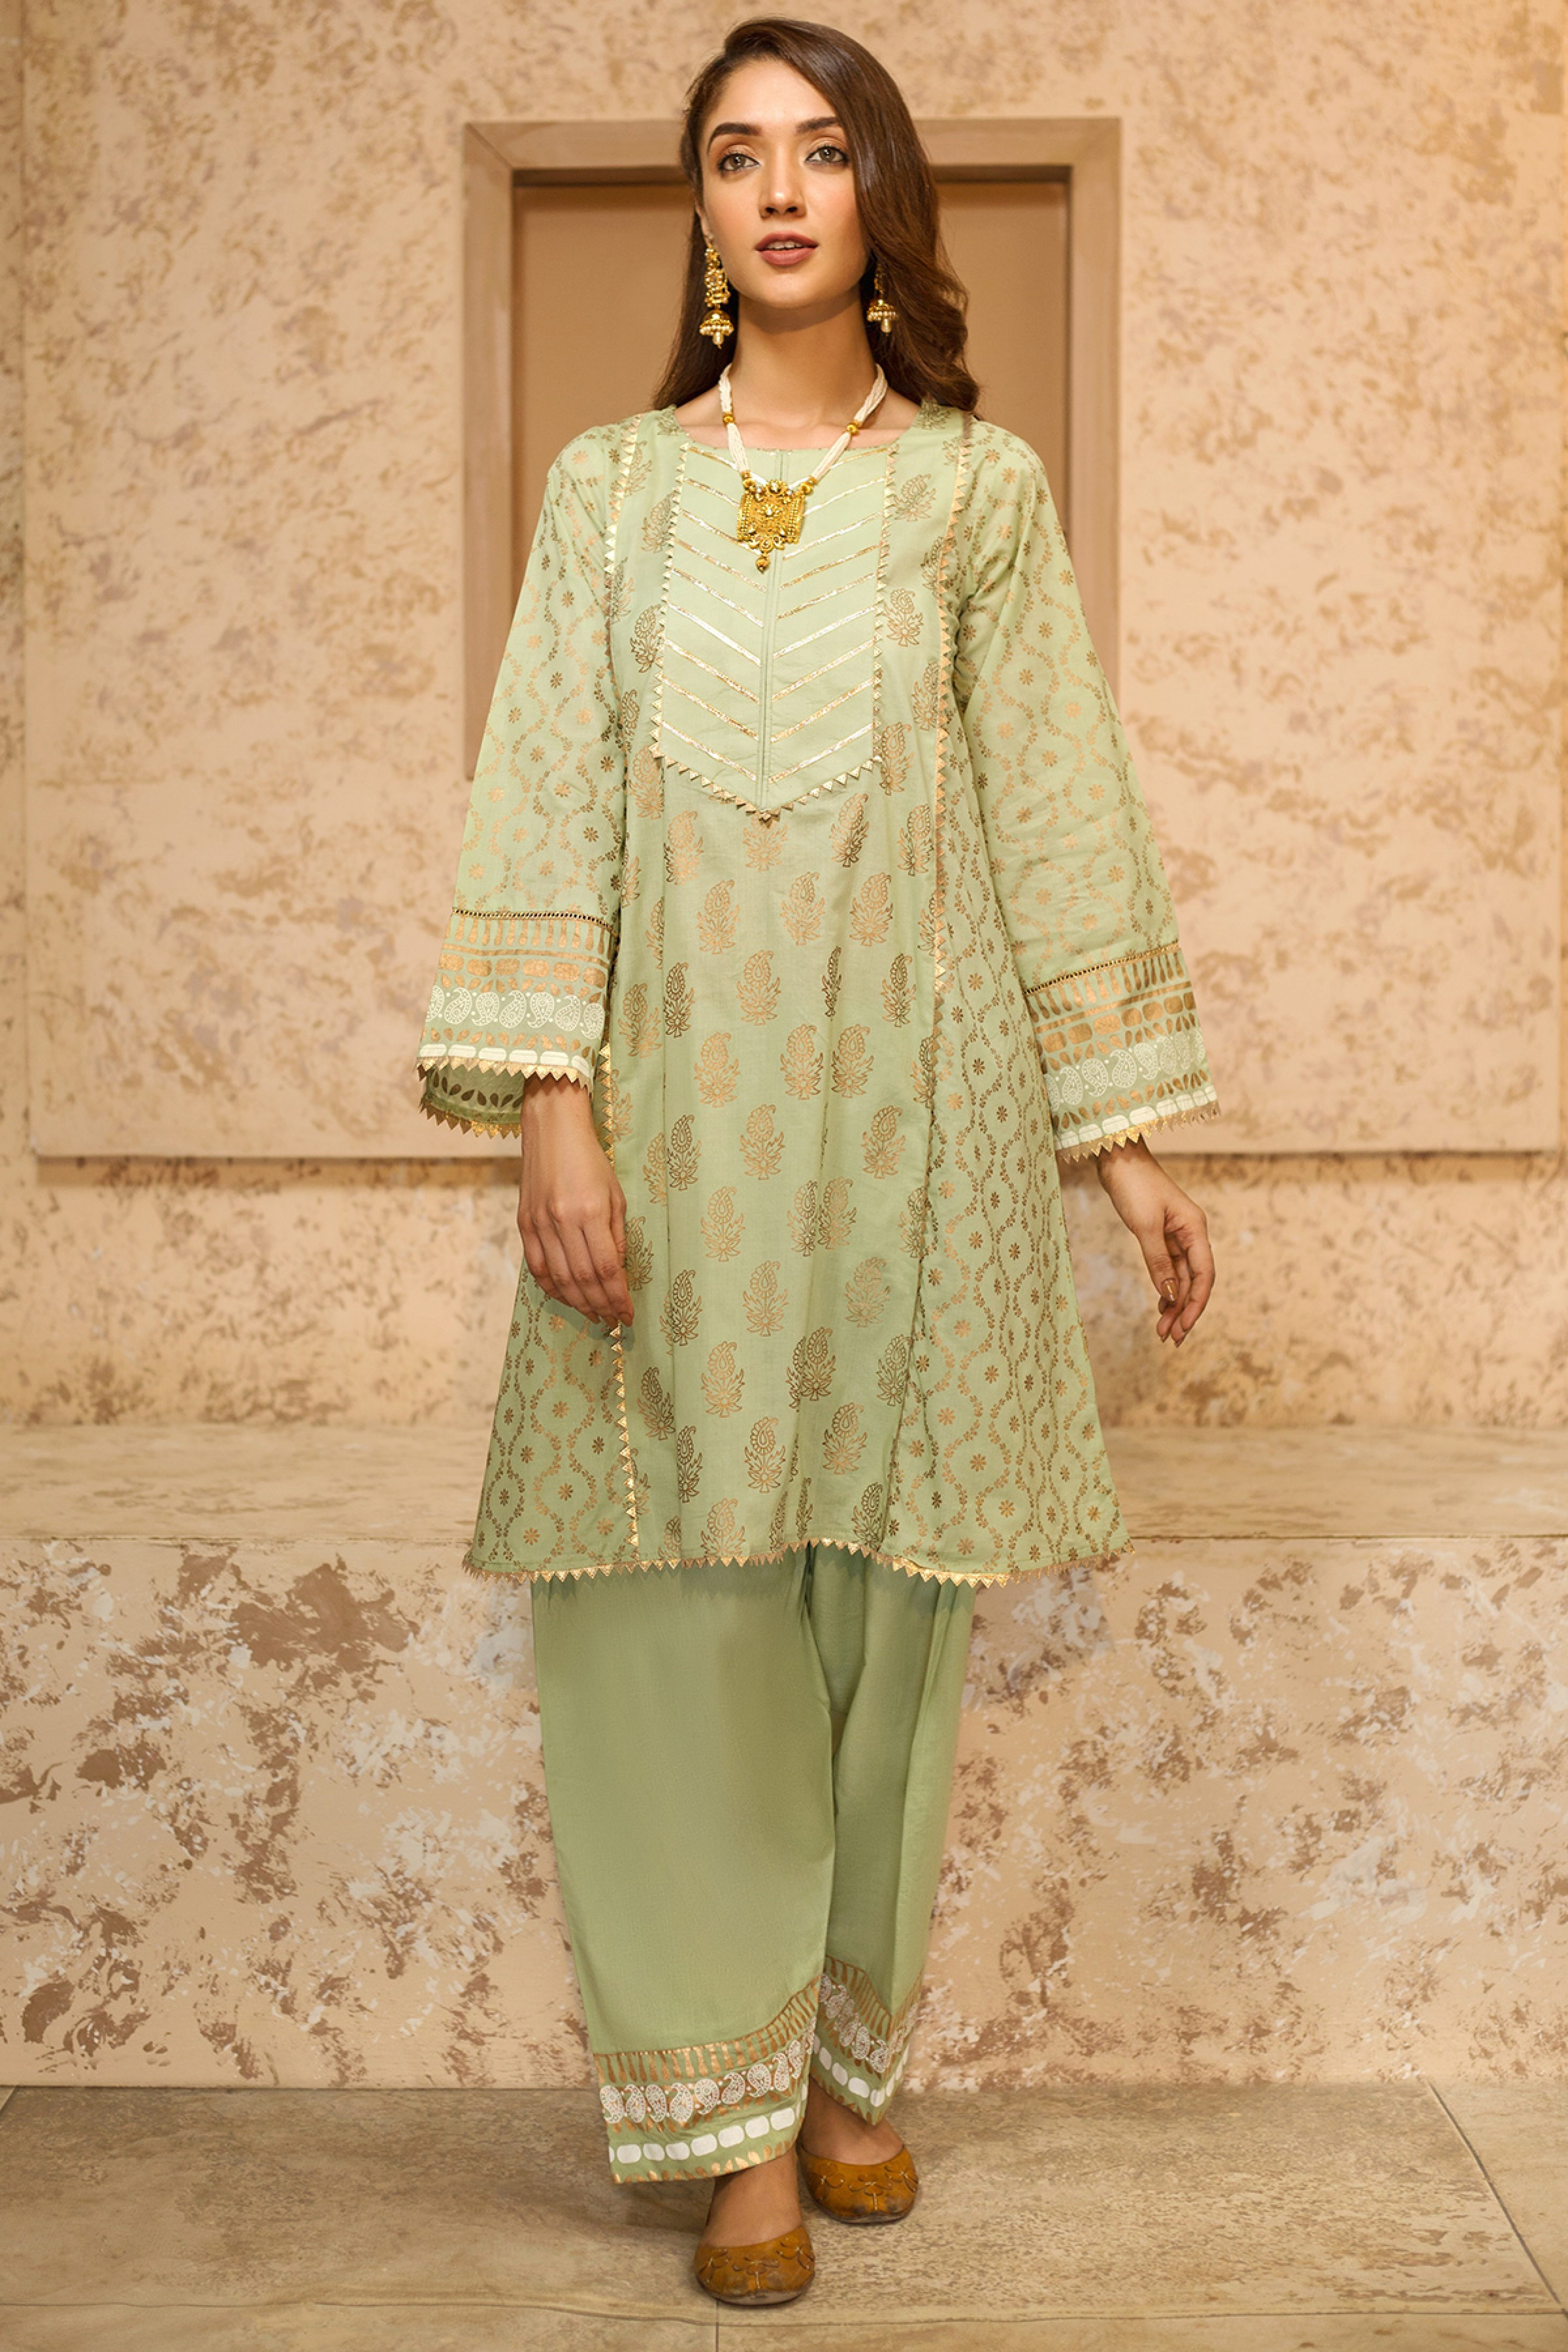 MUSHK(Gold Printed Frock With Shalwar)